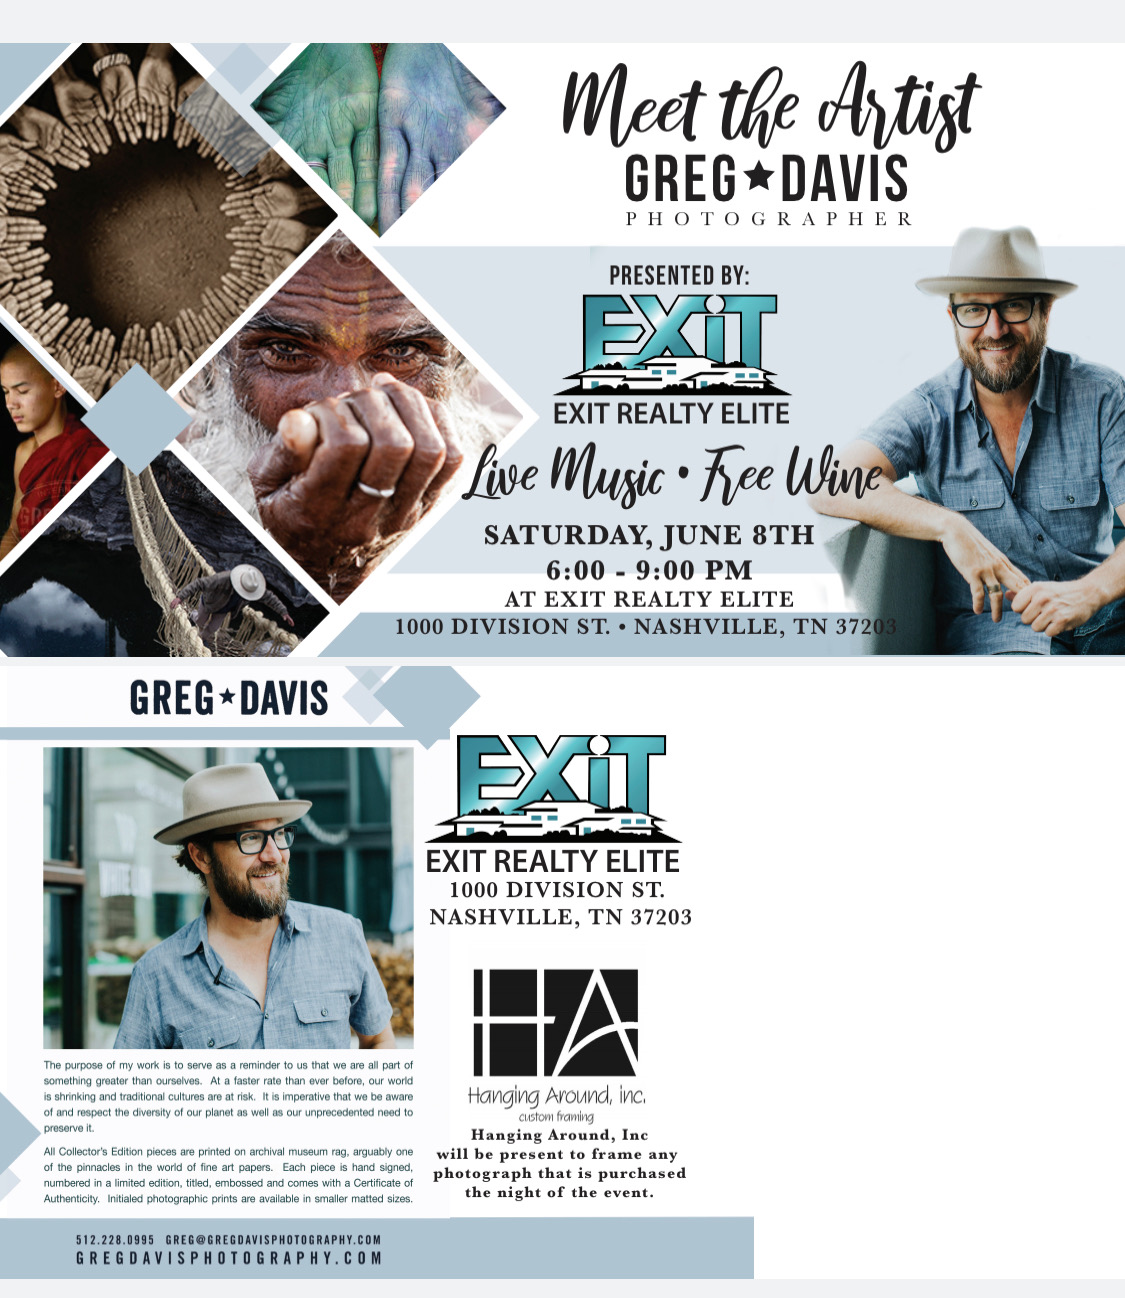 Exhibition at Exit Realty Elite Gulch